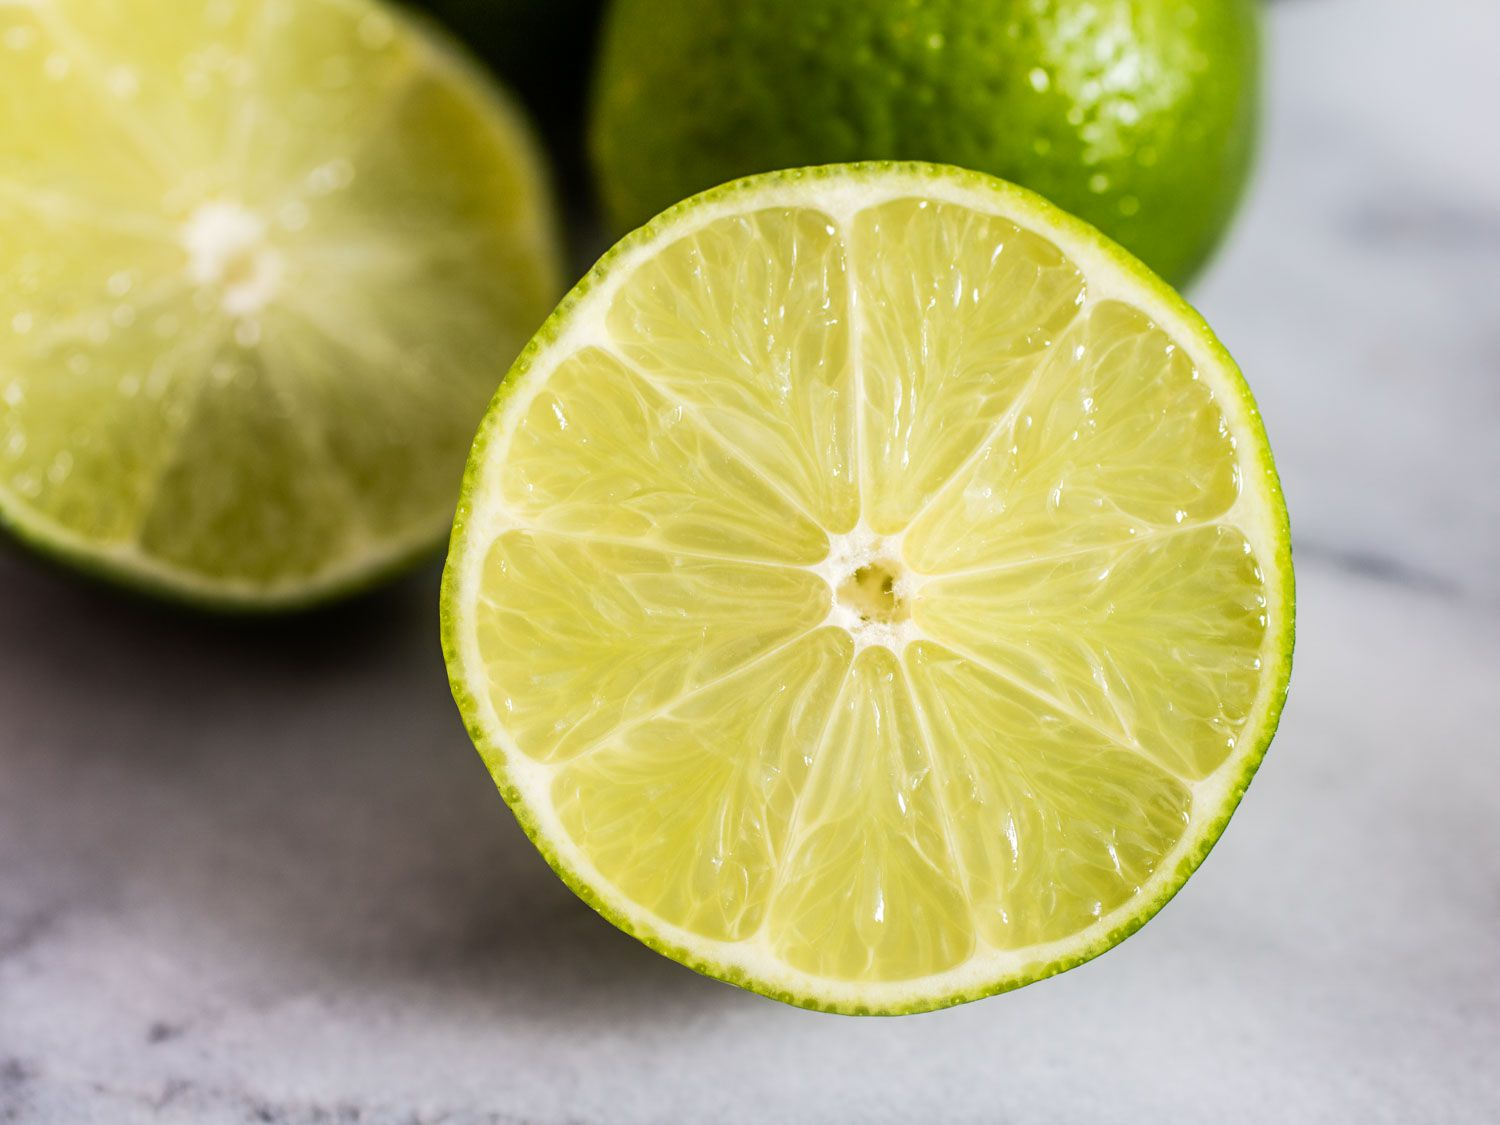 A close up of a lime that's been cut in half.